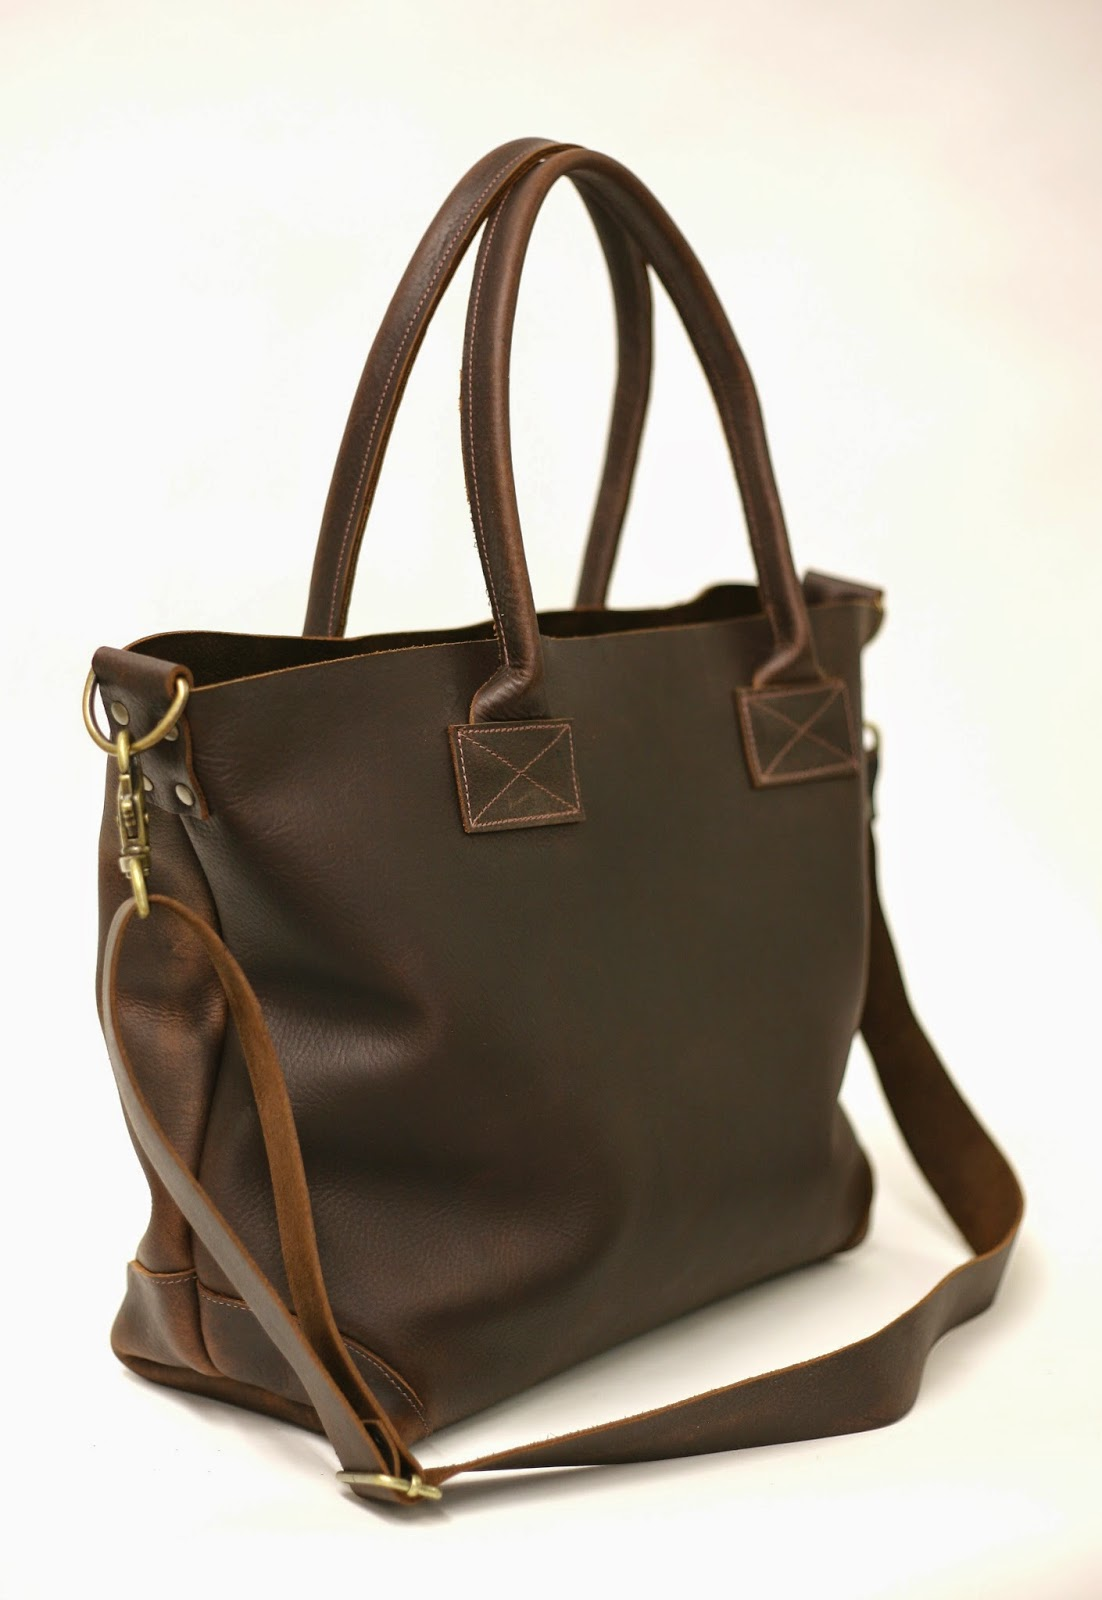 http://www.forestbound.com/collections/leather-bags/products/ashcroft-leather-carryall-1